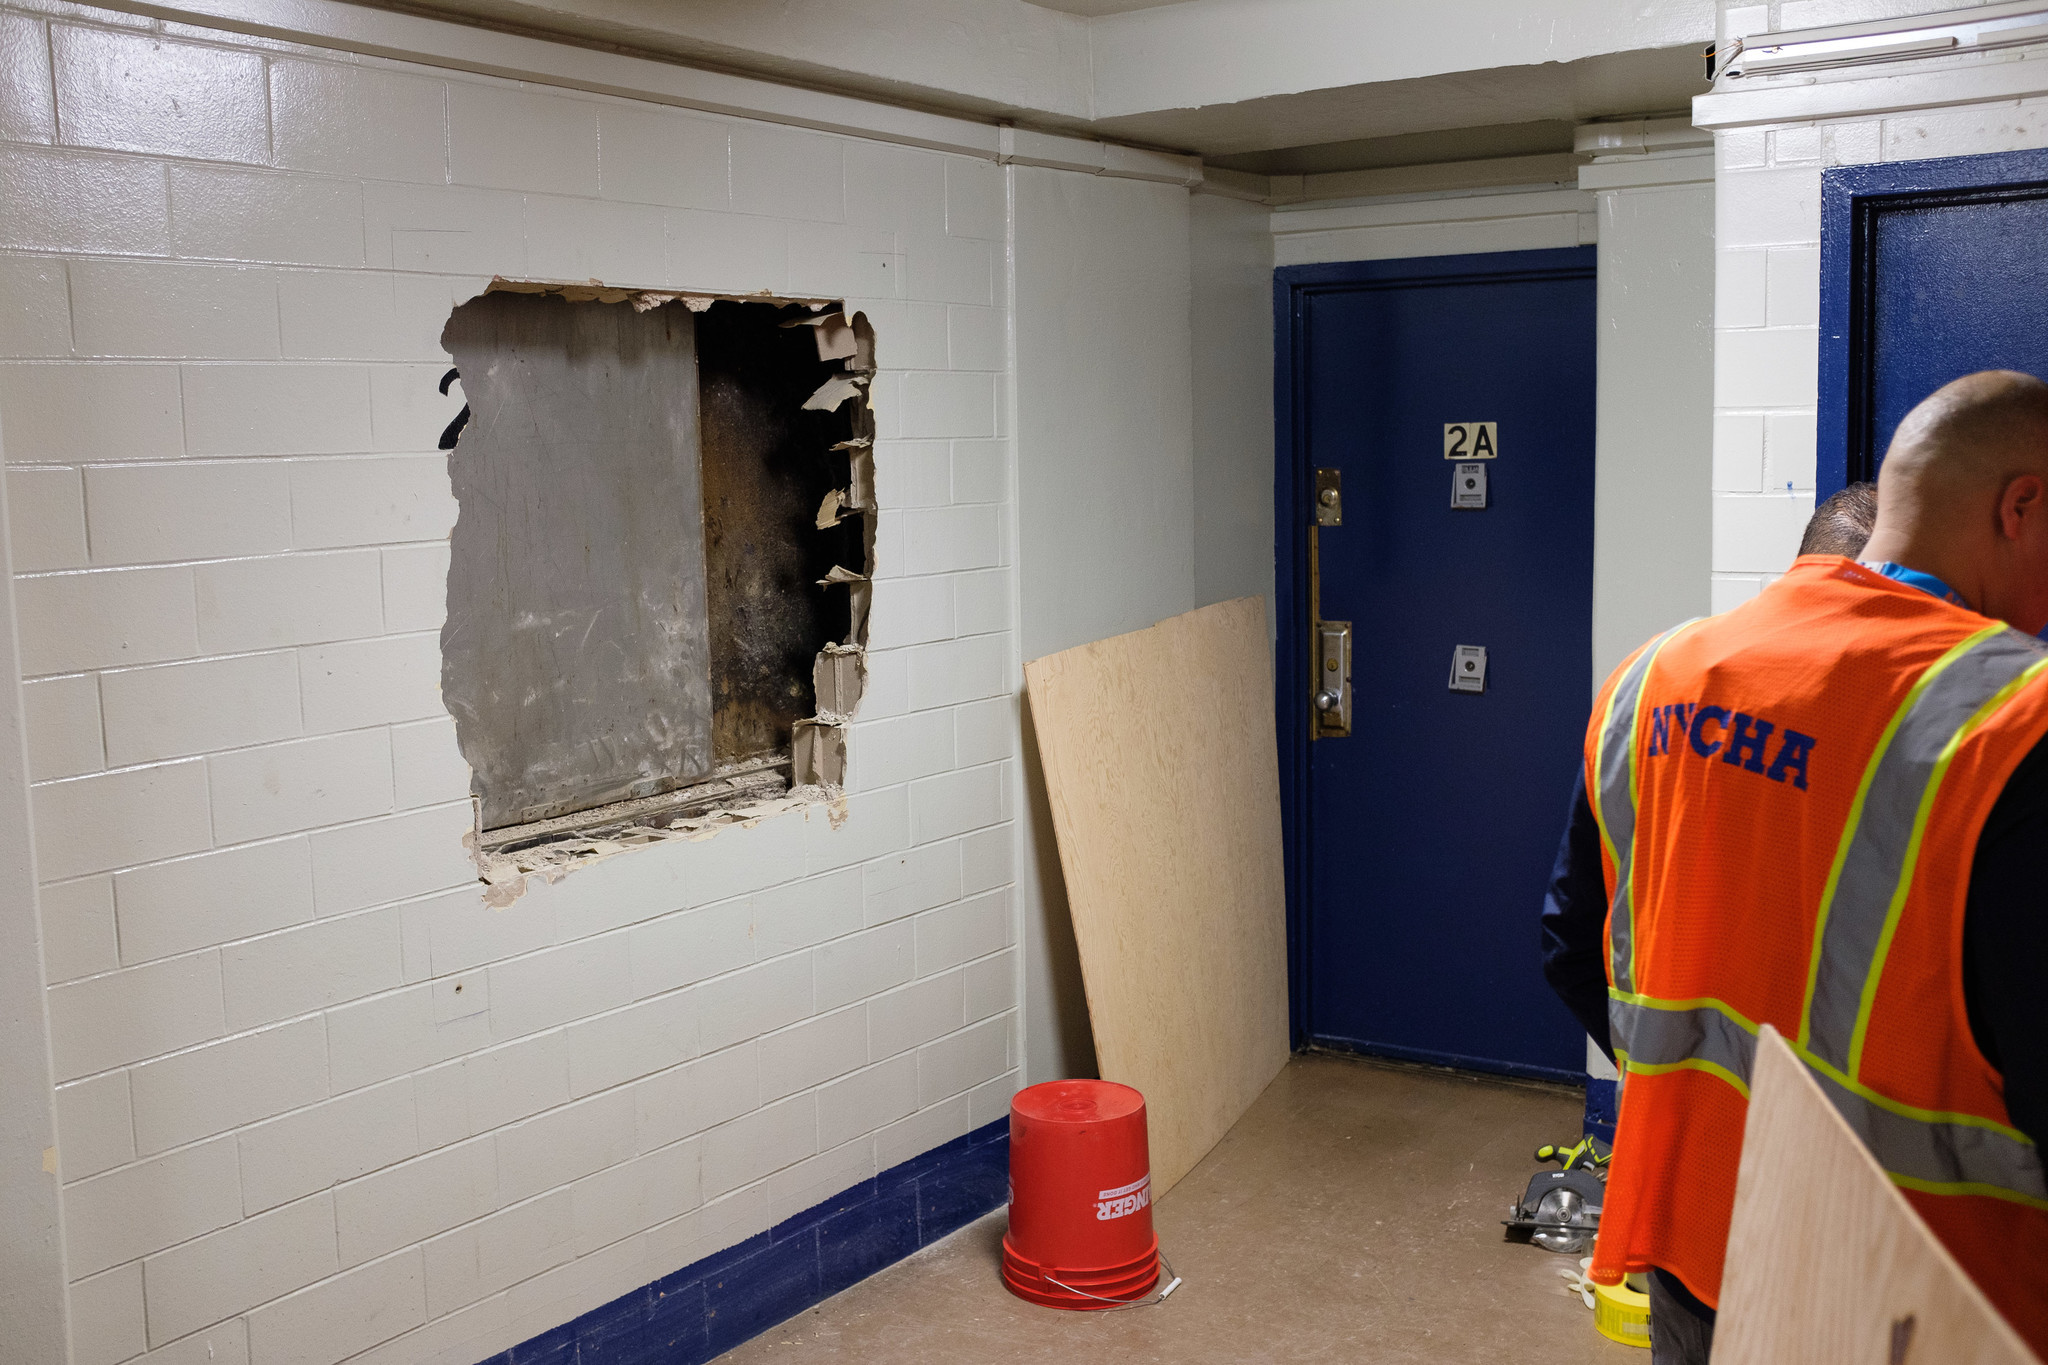 Firefighters cut wall to rescue man stuck in East Harlem NYCHA elevator